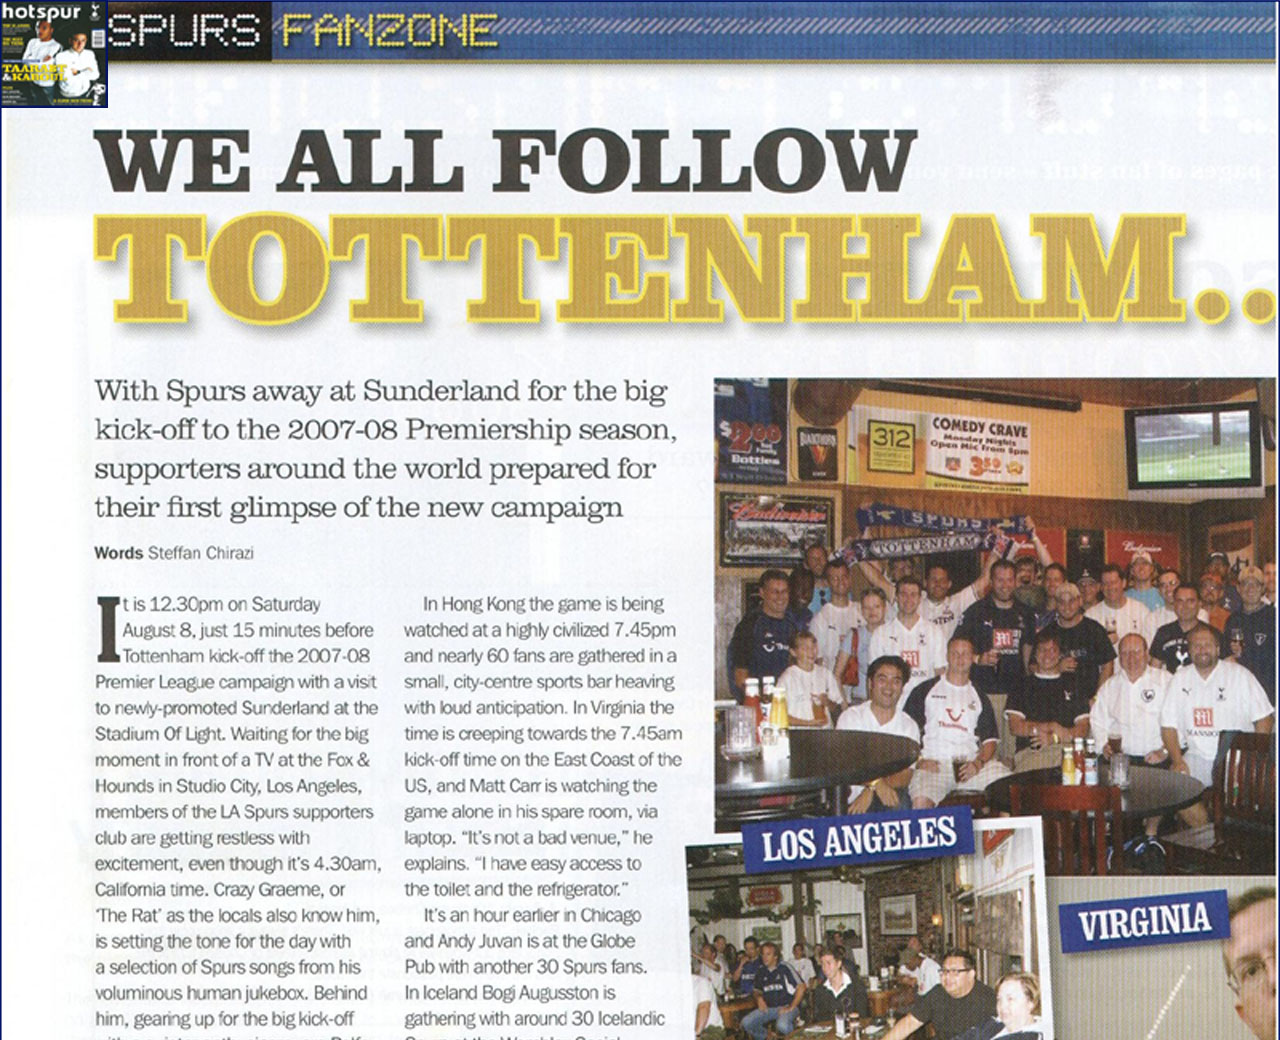 L.A. Spurs featured in October 2007 Hotspur Magazine